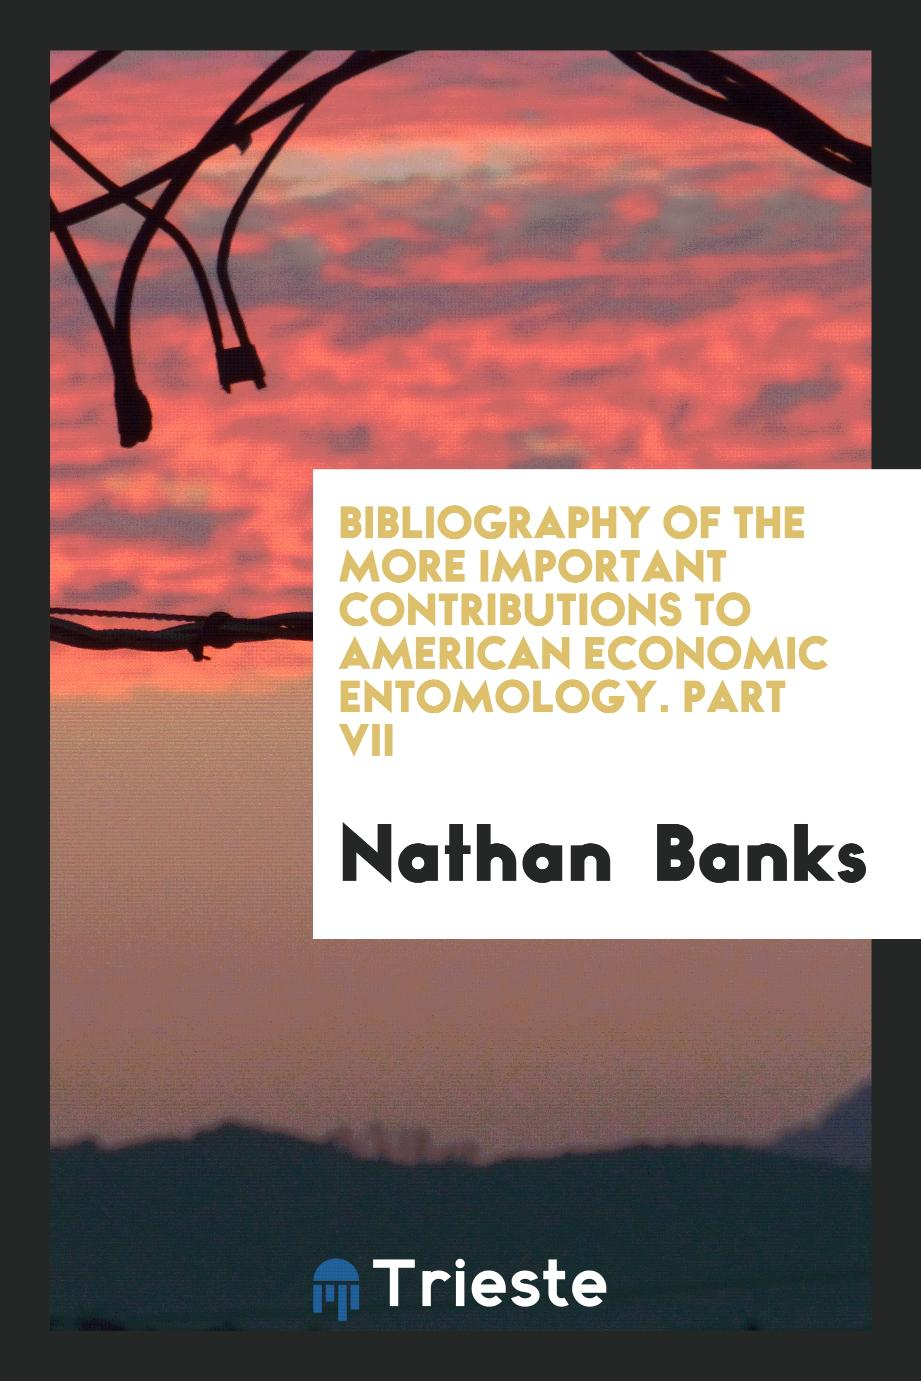 Bibliography of the More Important Contributions to American Economic Entomology. Part VII